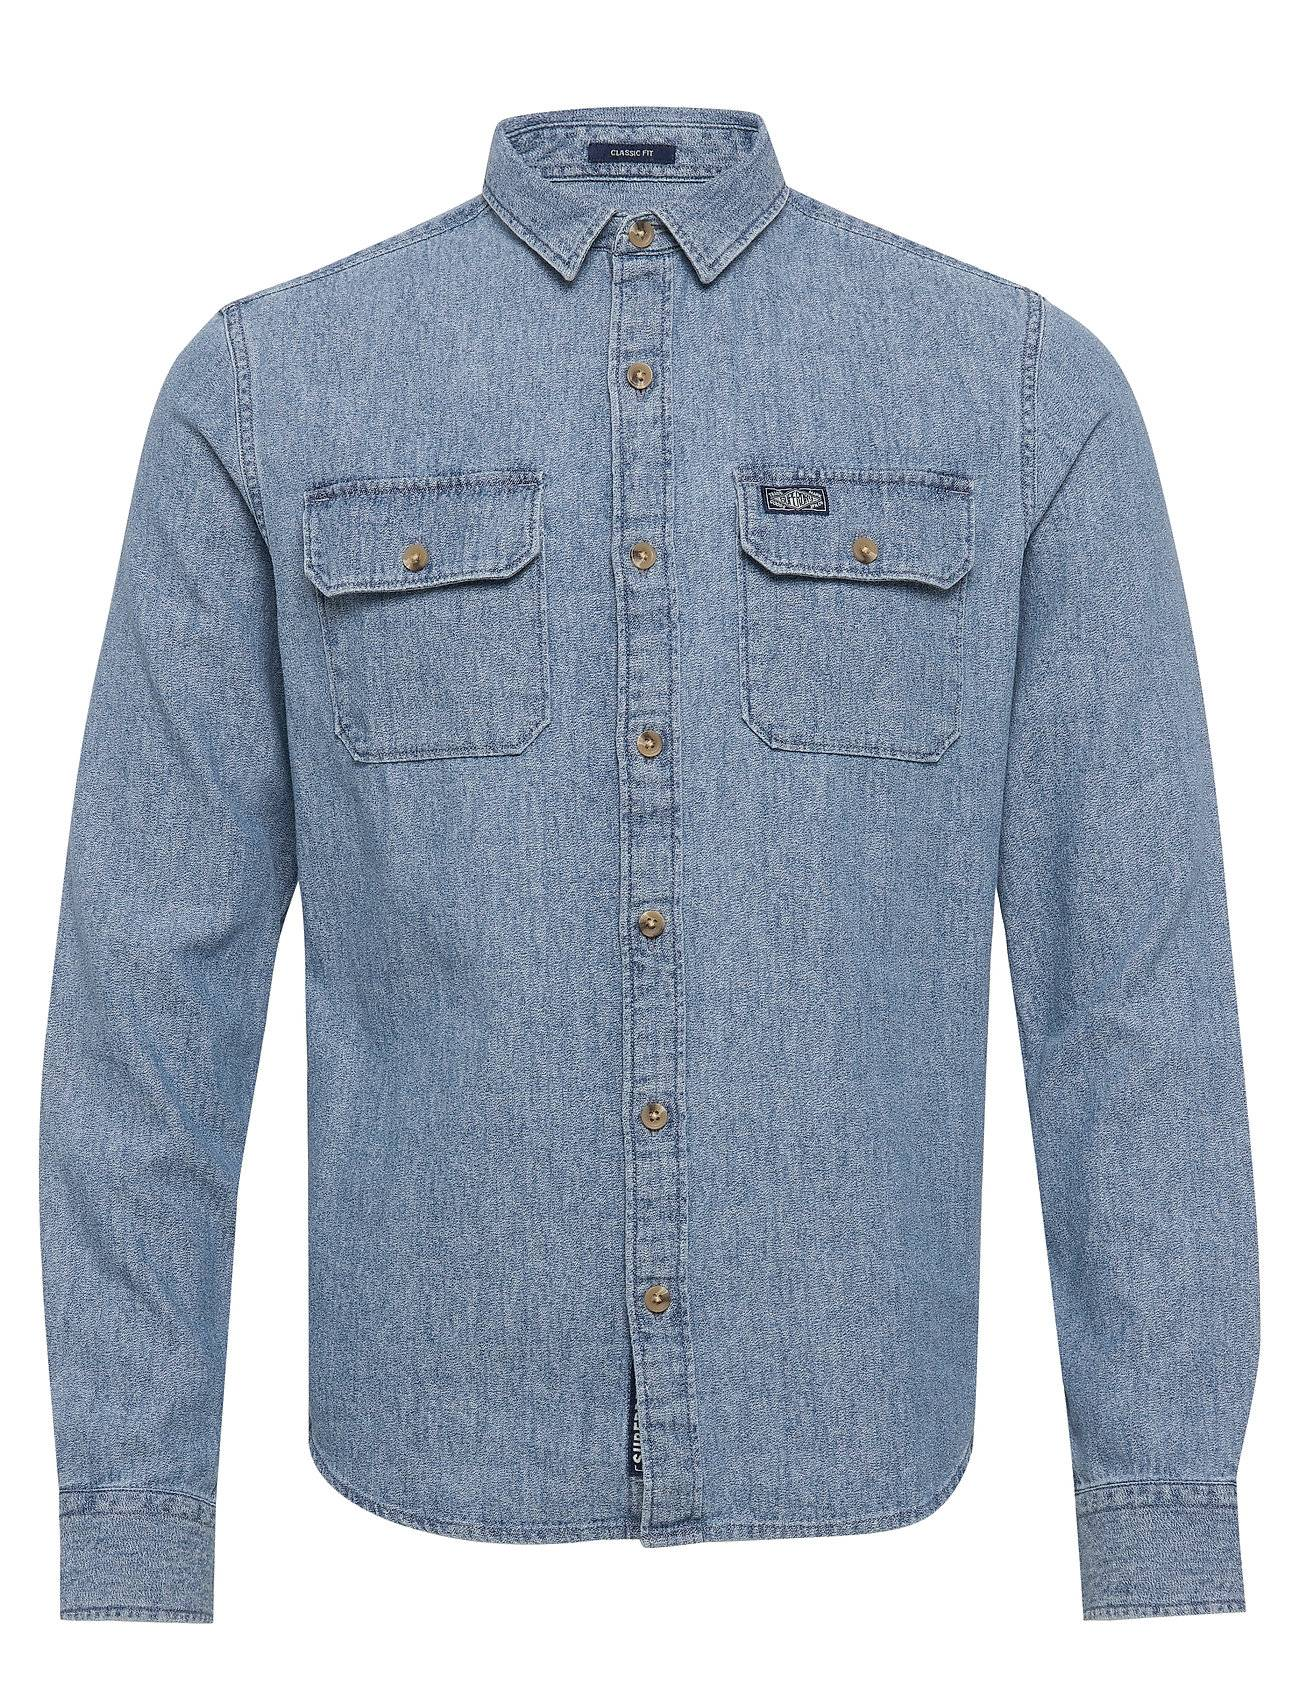 Image of Superdry Merchant Milled Lite L/S Shirt Paita Rento Casual Sininen Superdry